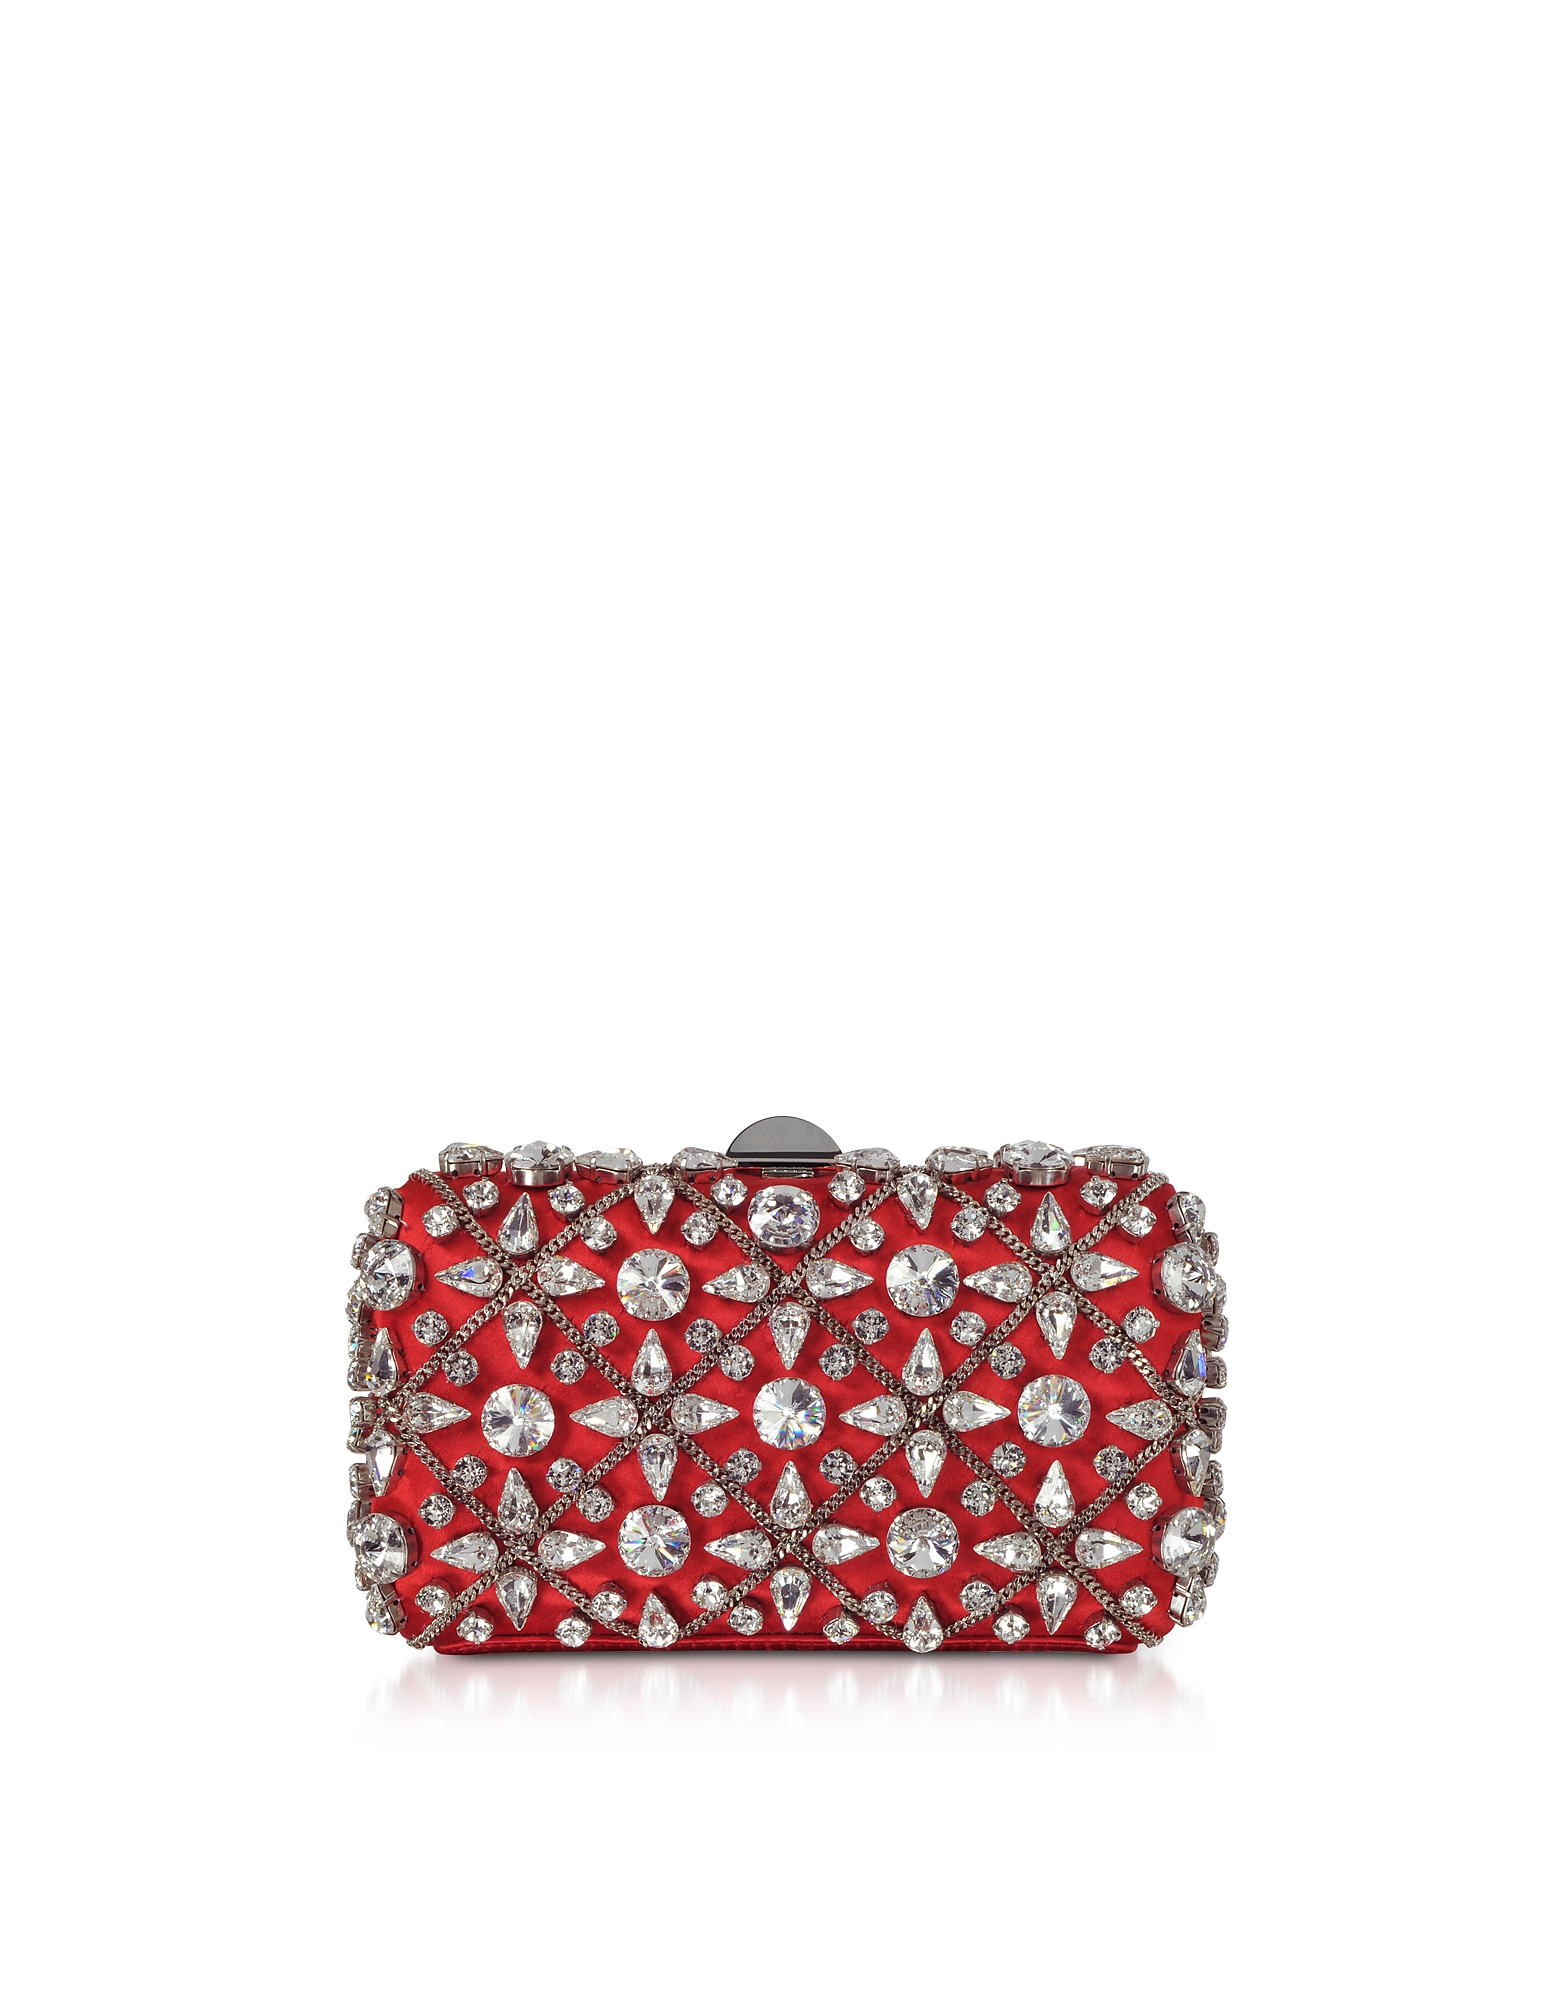 Red Satin Clutch w/Crystals and Chain